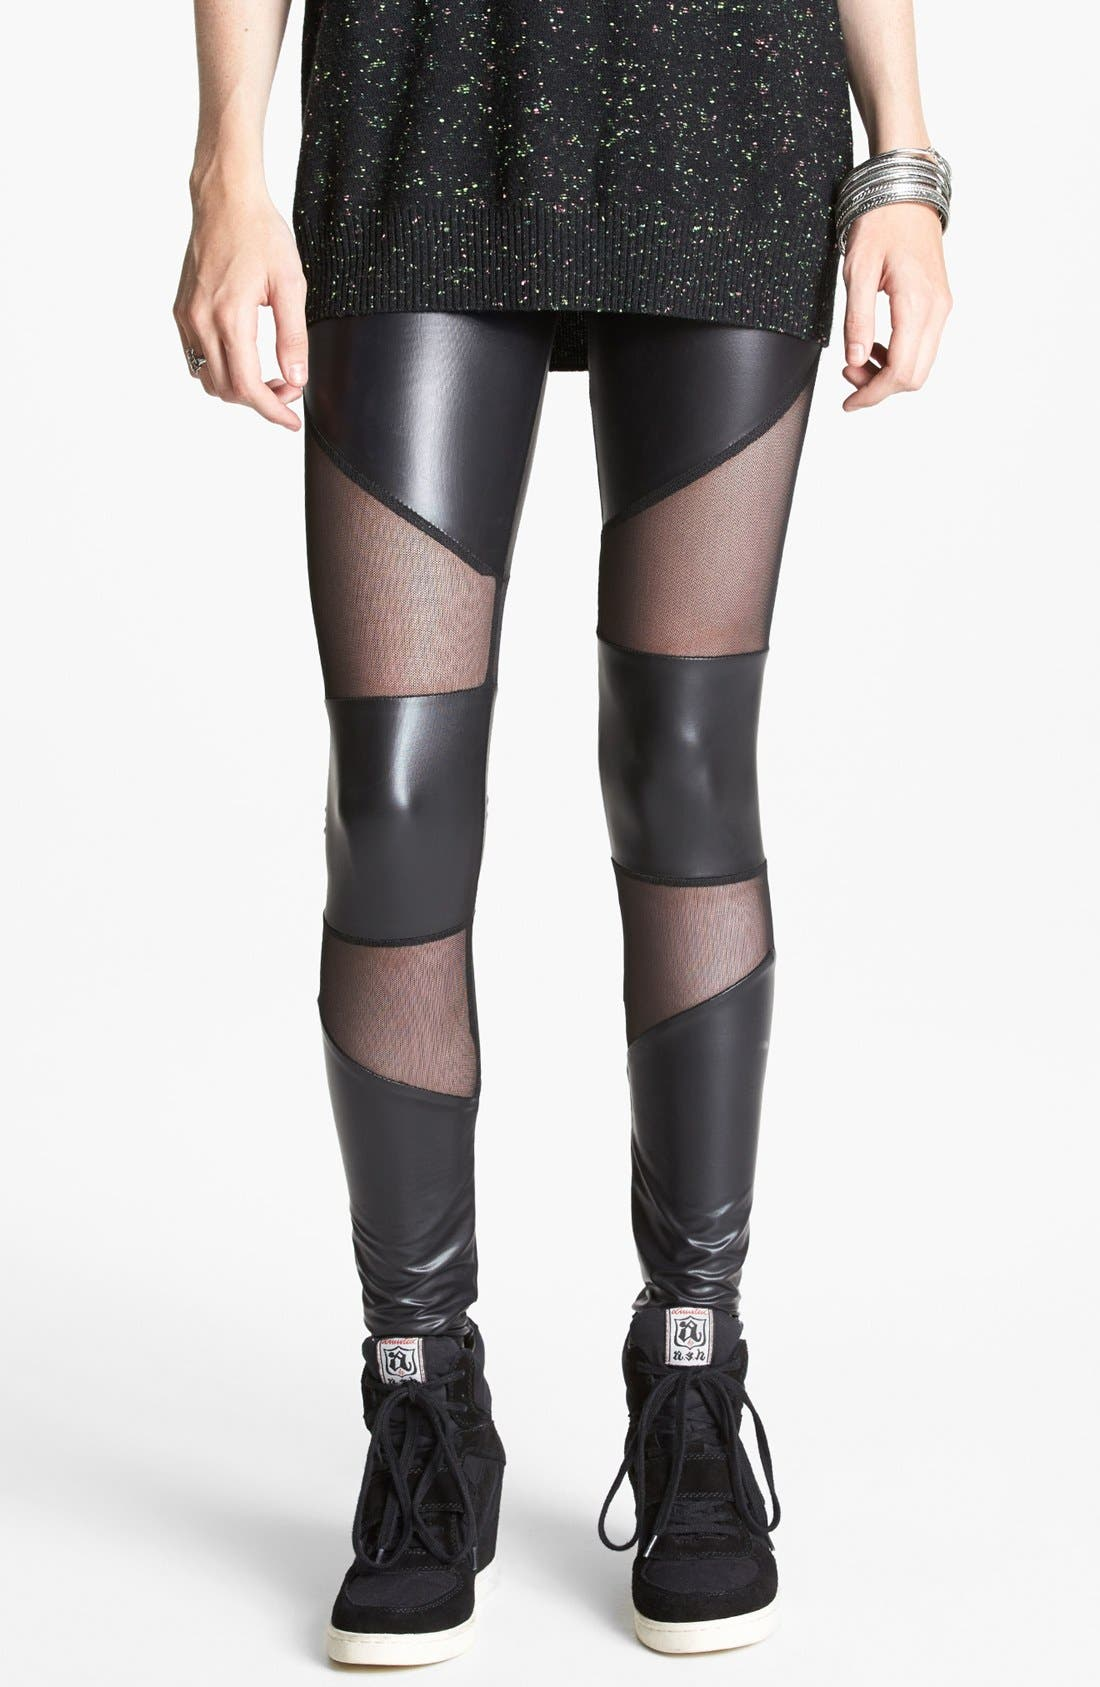 Alternate Image 1 Selected - Lush Mesh Inset Faux Leather Leggings (Juniors) (Online Only)